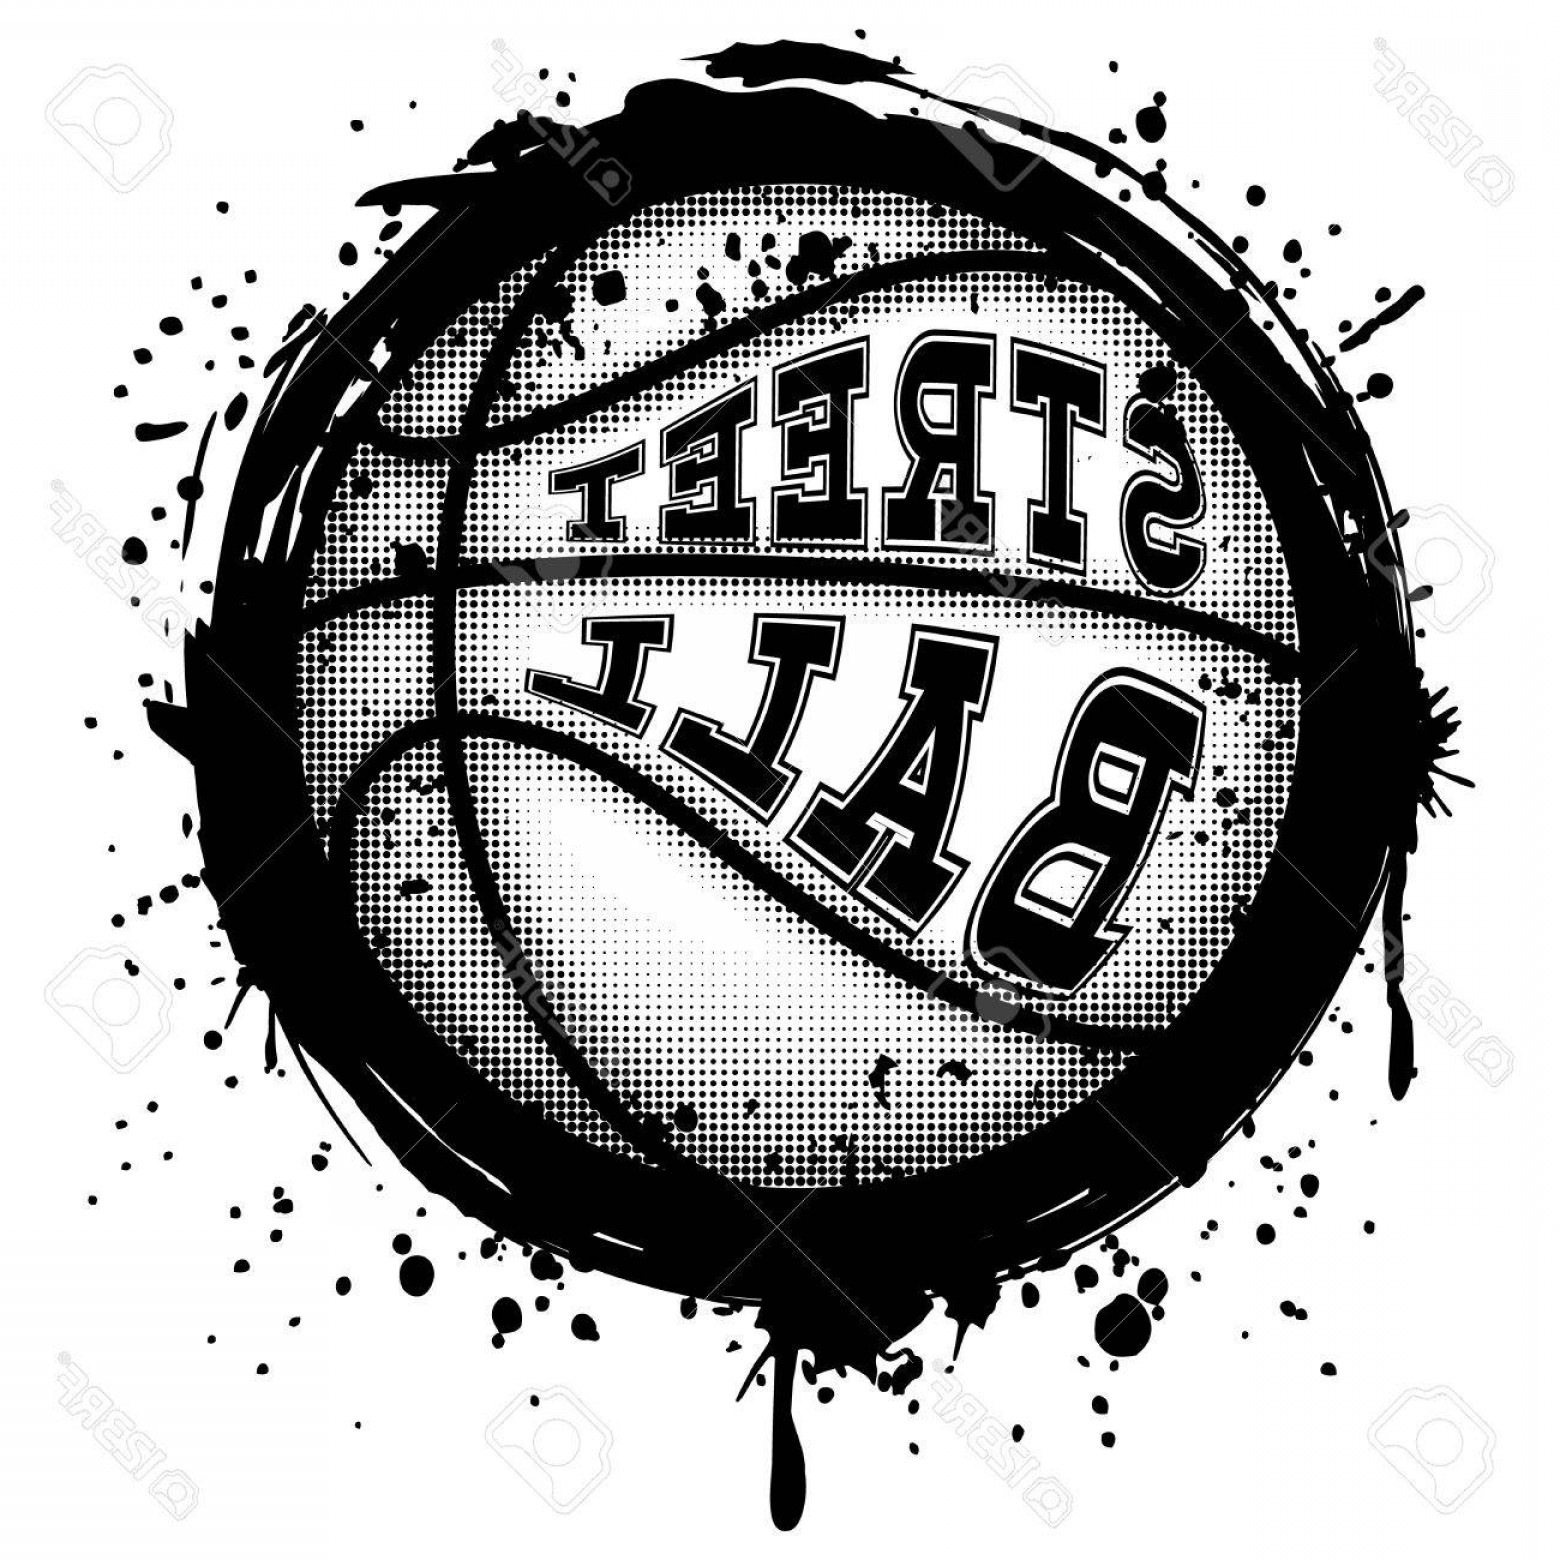 Basketball Vector Graphic Designs: Photostock Vector Abstract Vector Illustration Black And White Basketball Ball On Grunge Background Inscription Street